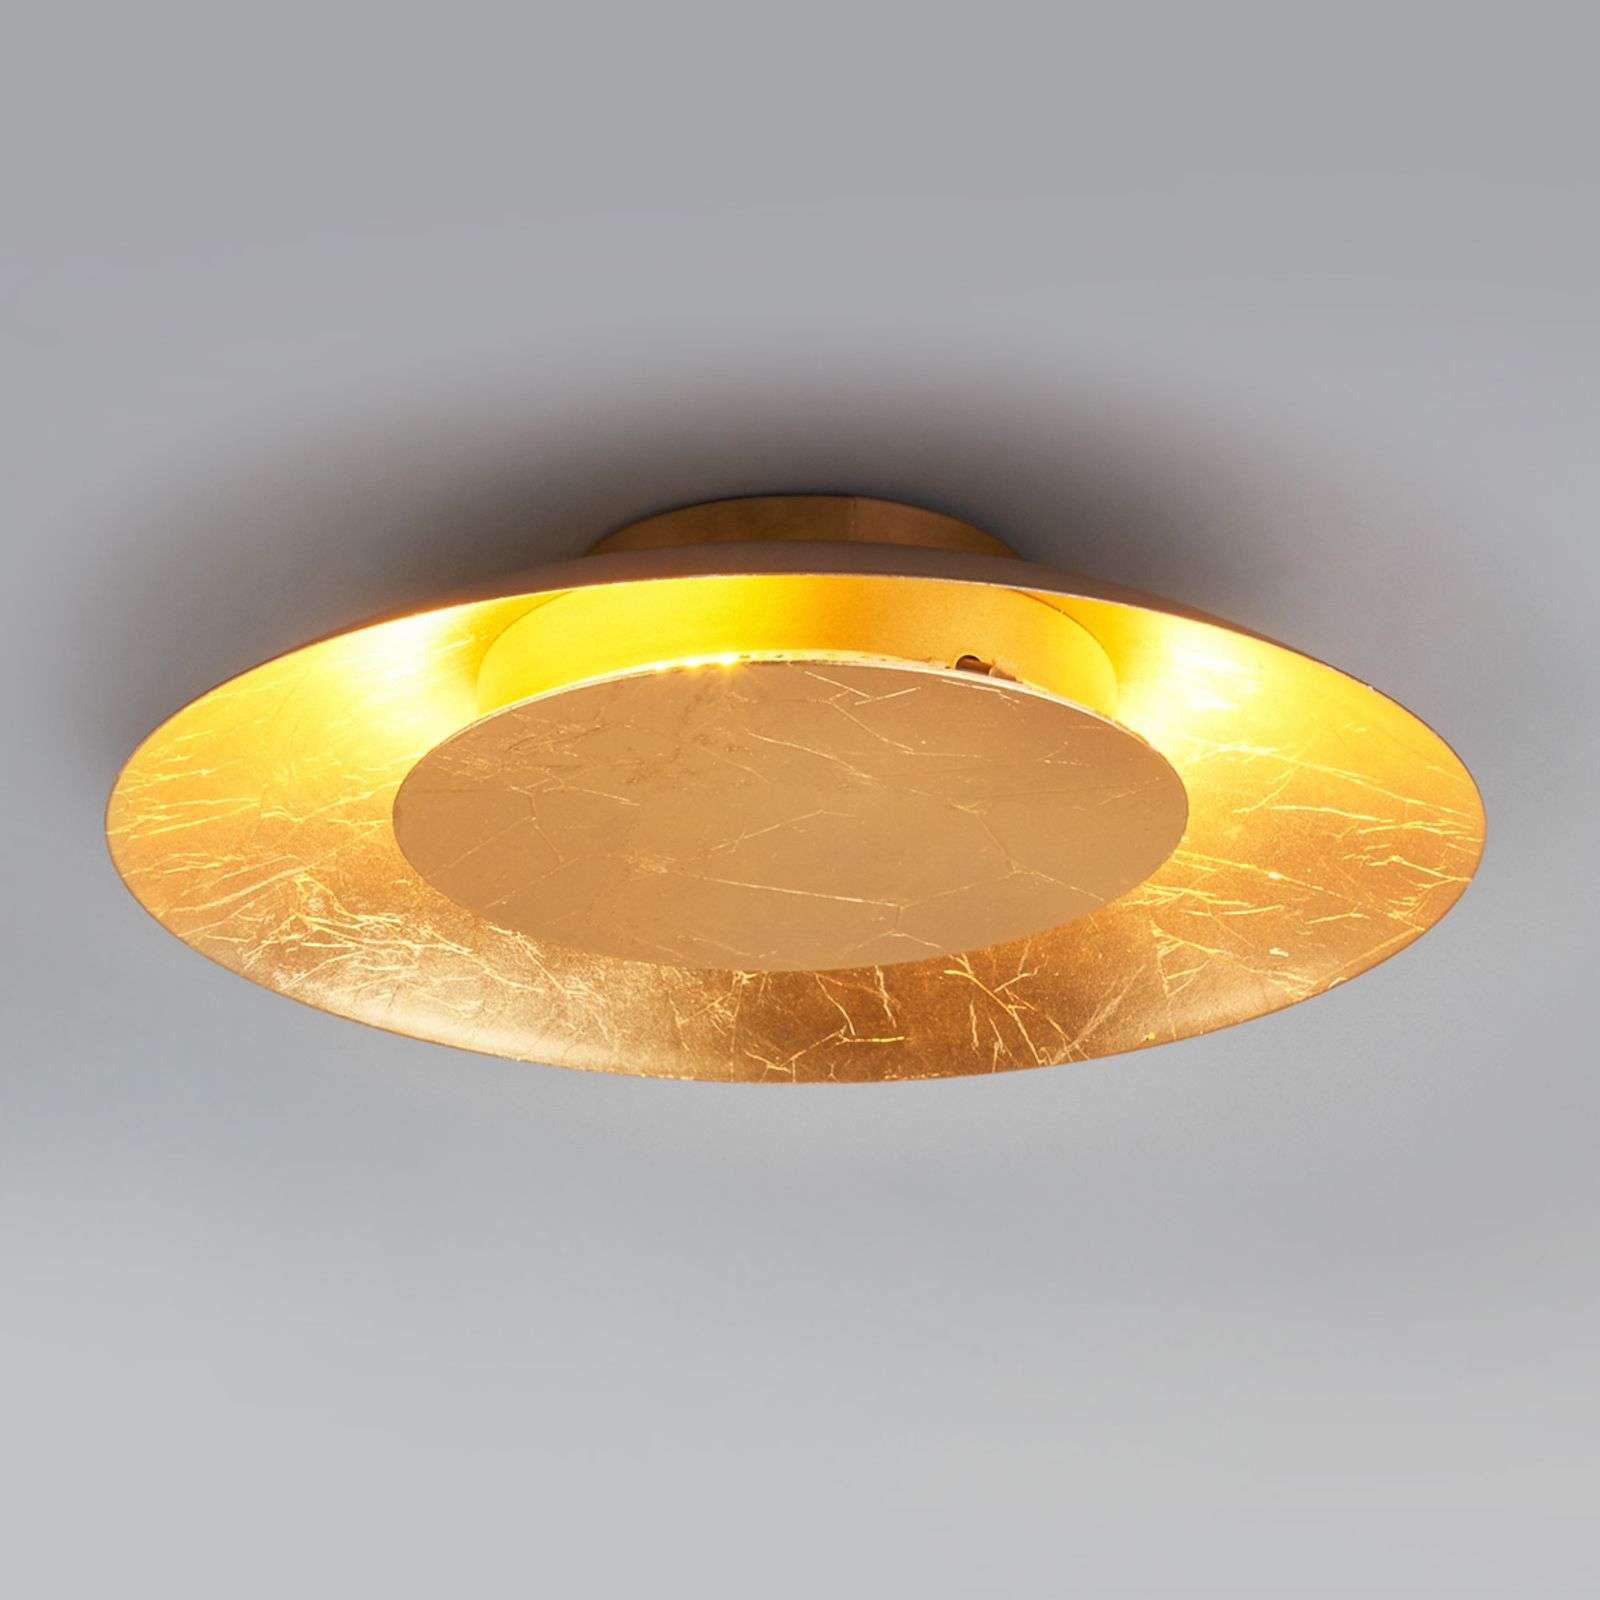 Plafón LED Keti de color dorado